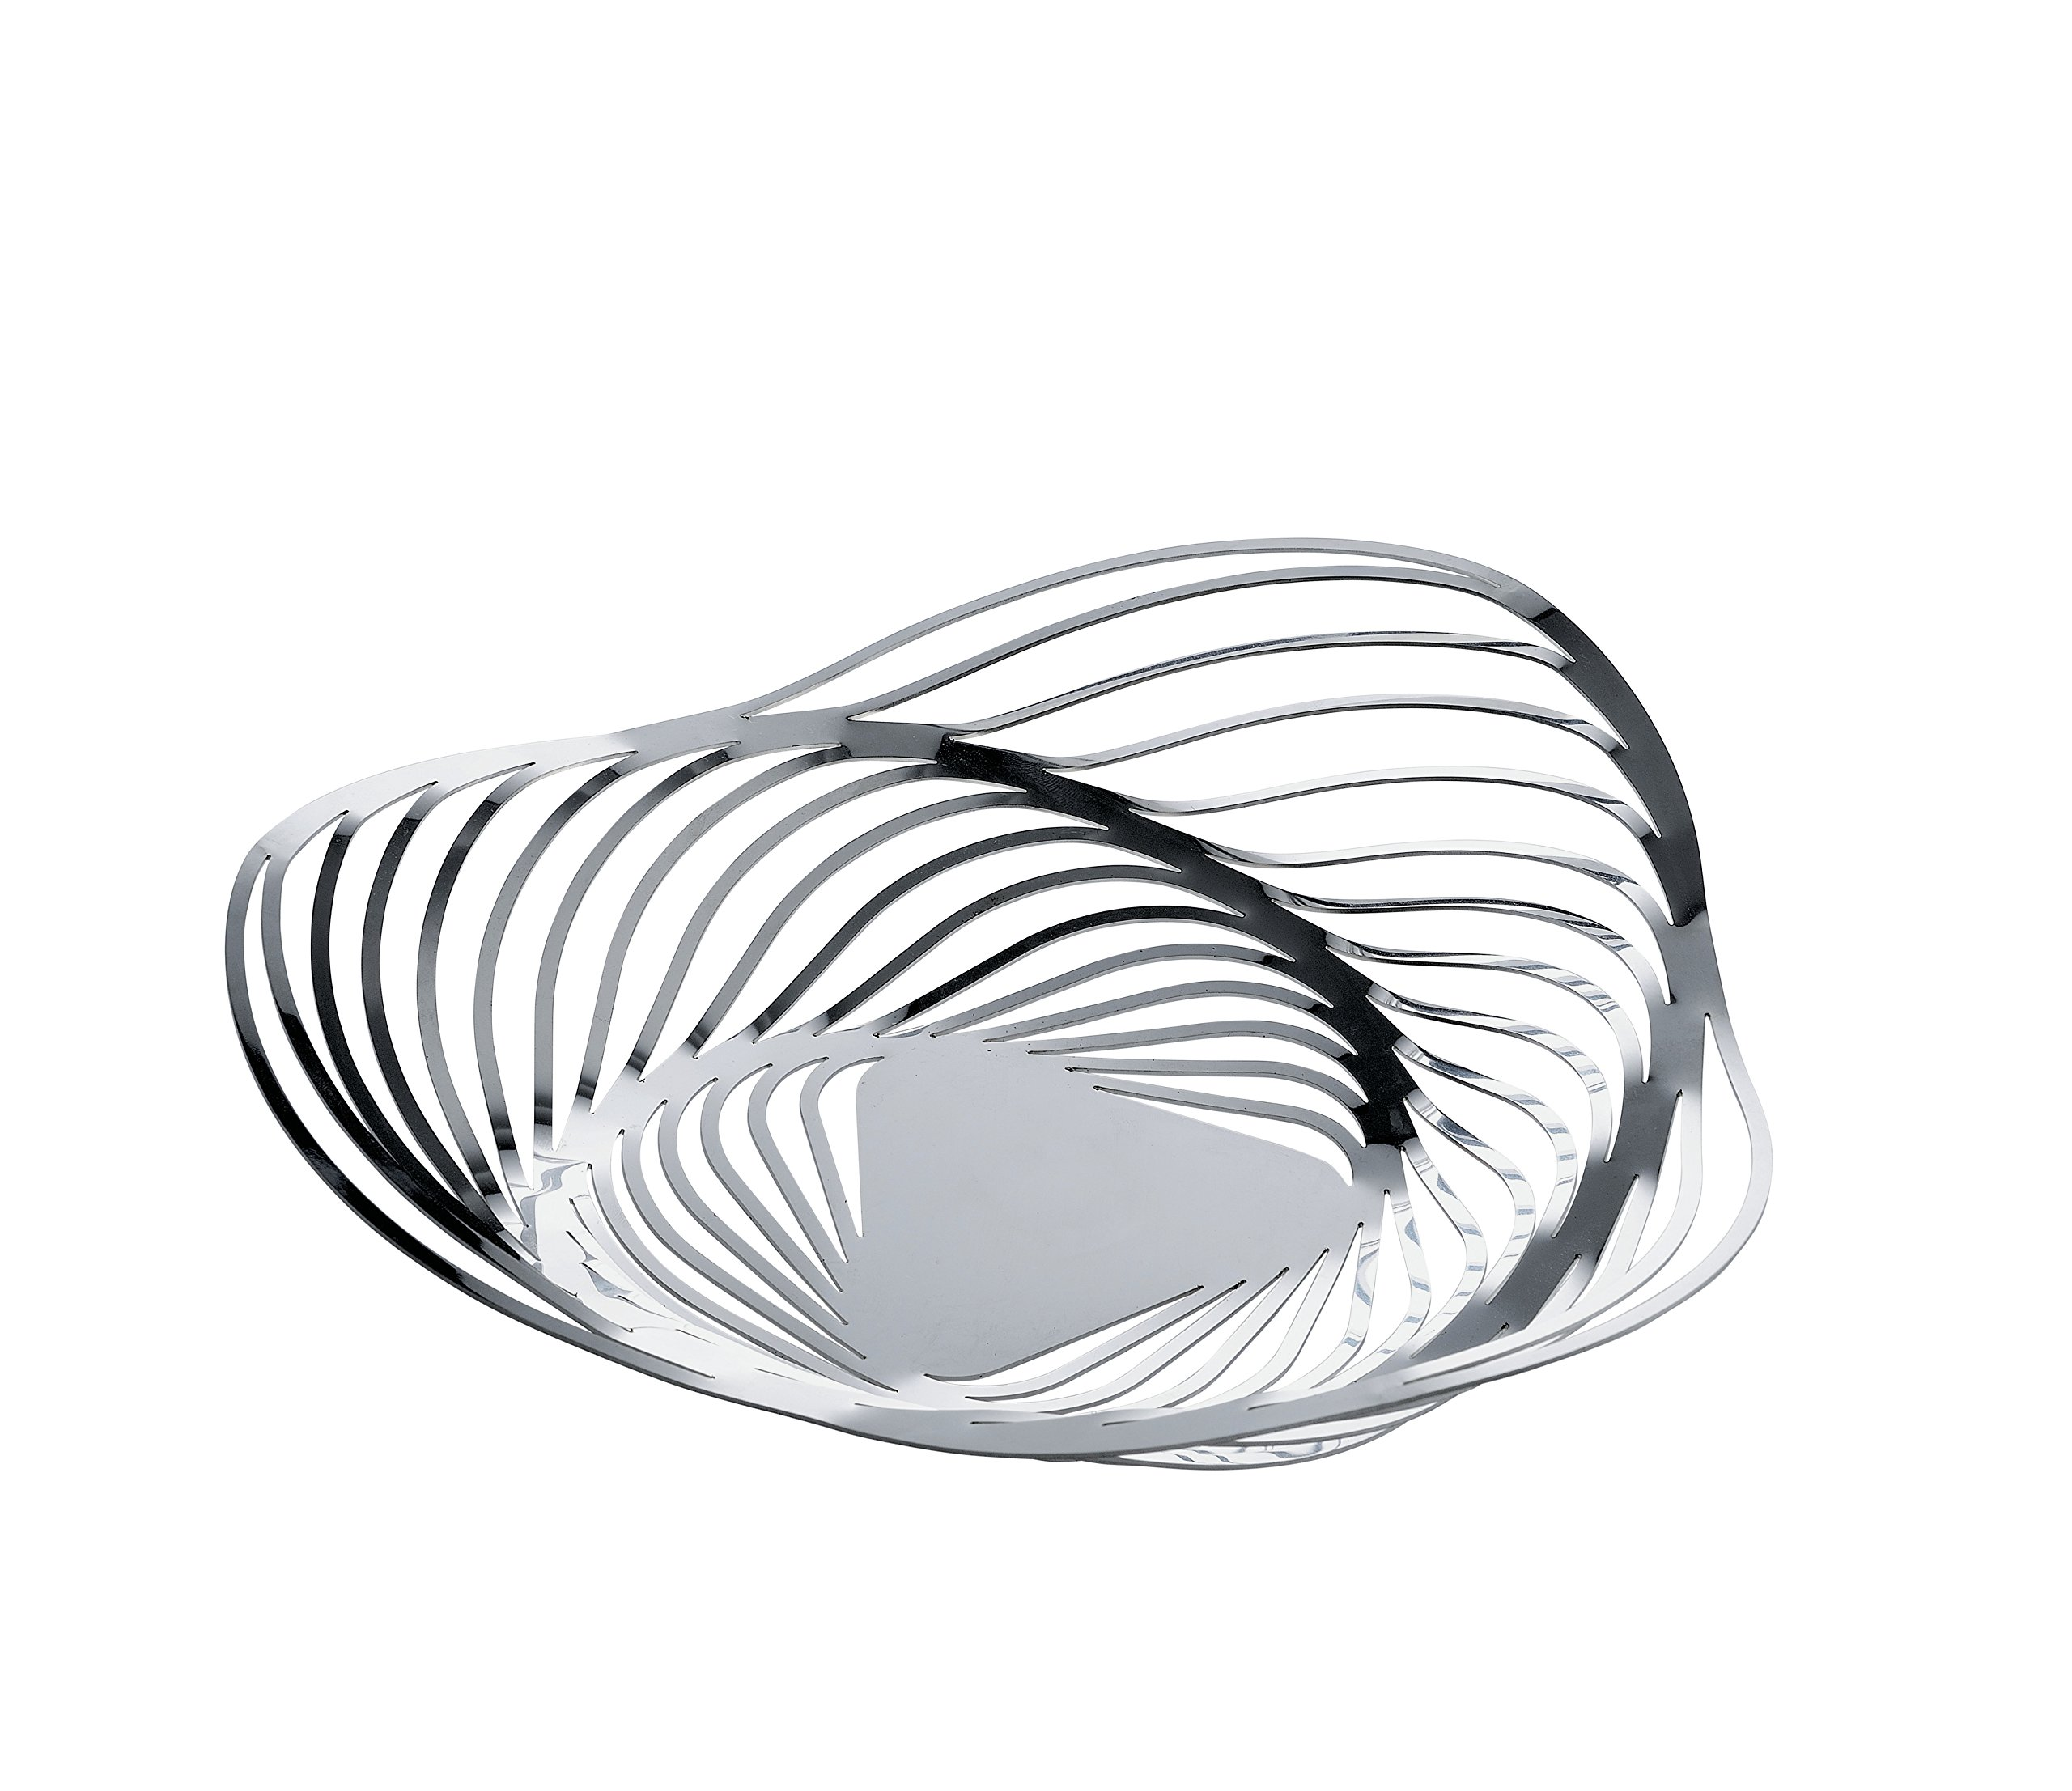 Alessi''Trinity'' Fruit Bowl in 18/10 Stainless Steel Mirror Polished, Silver